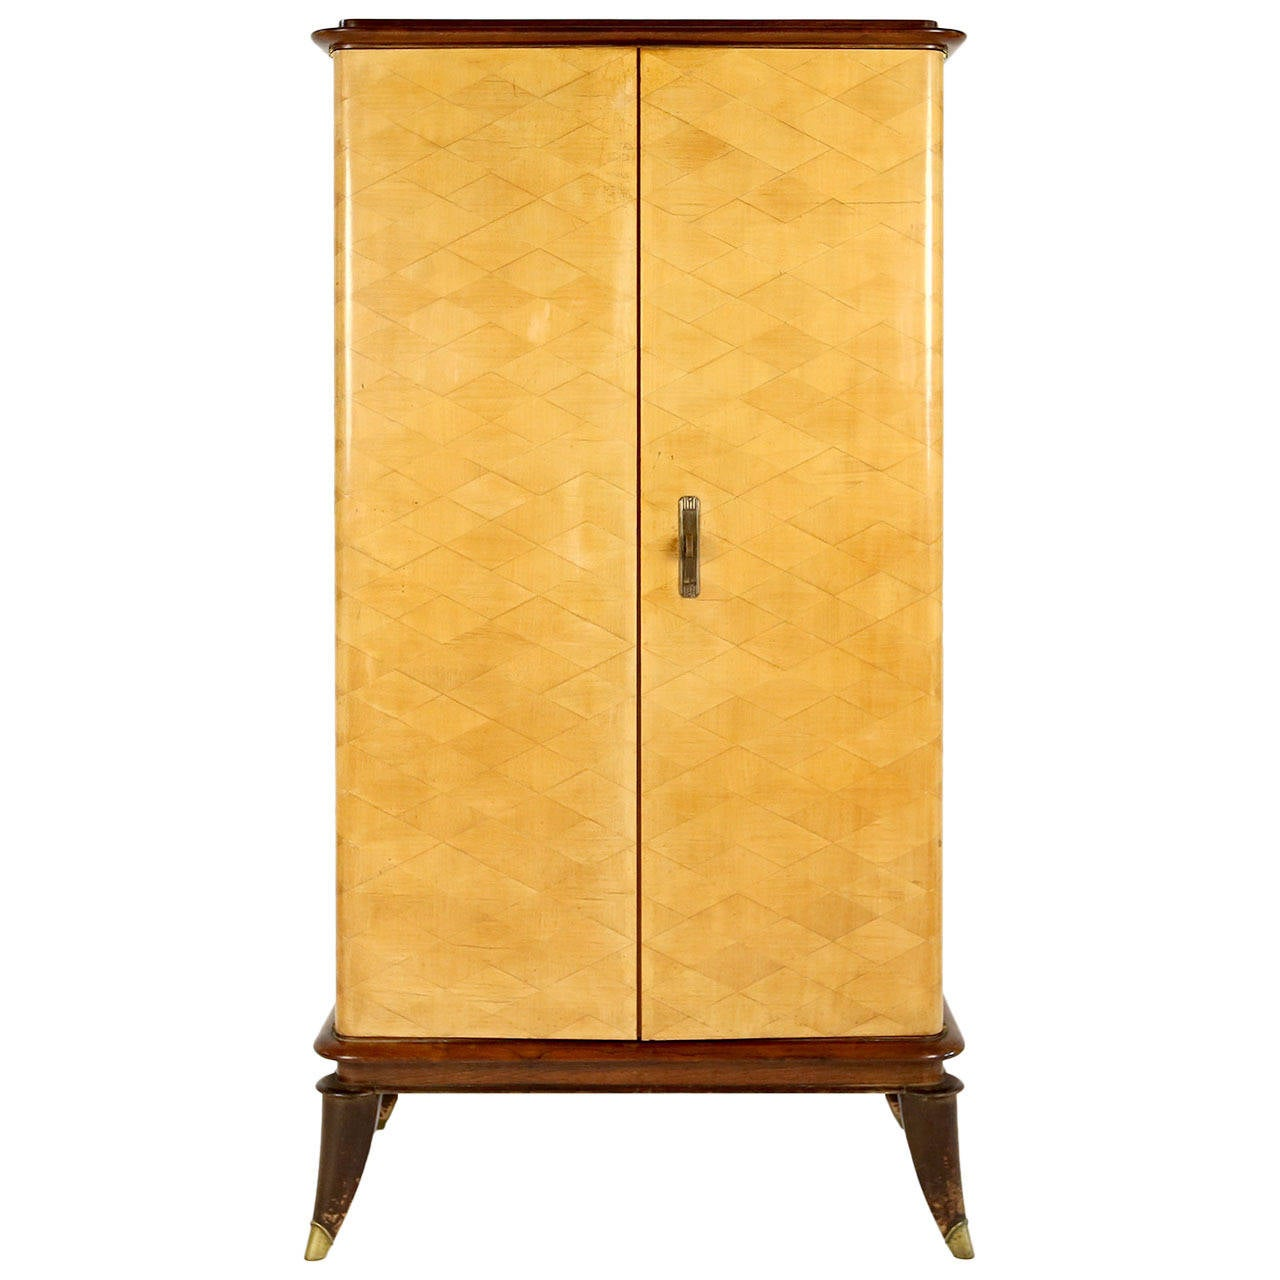 French meuble d 39 appui by jallot for sale at 1stdibs for Meubles furniture